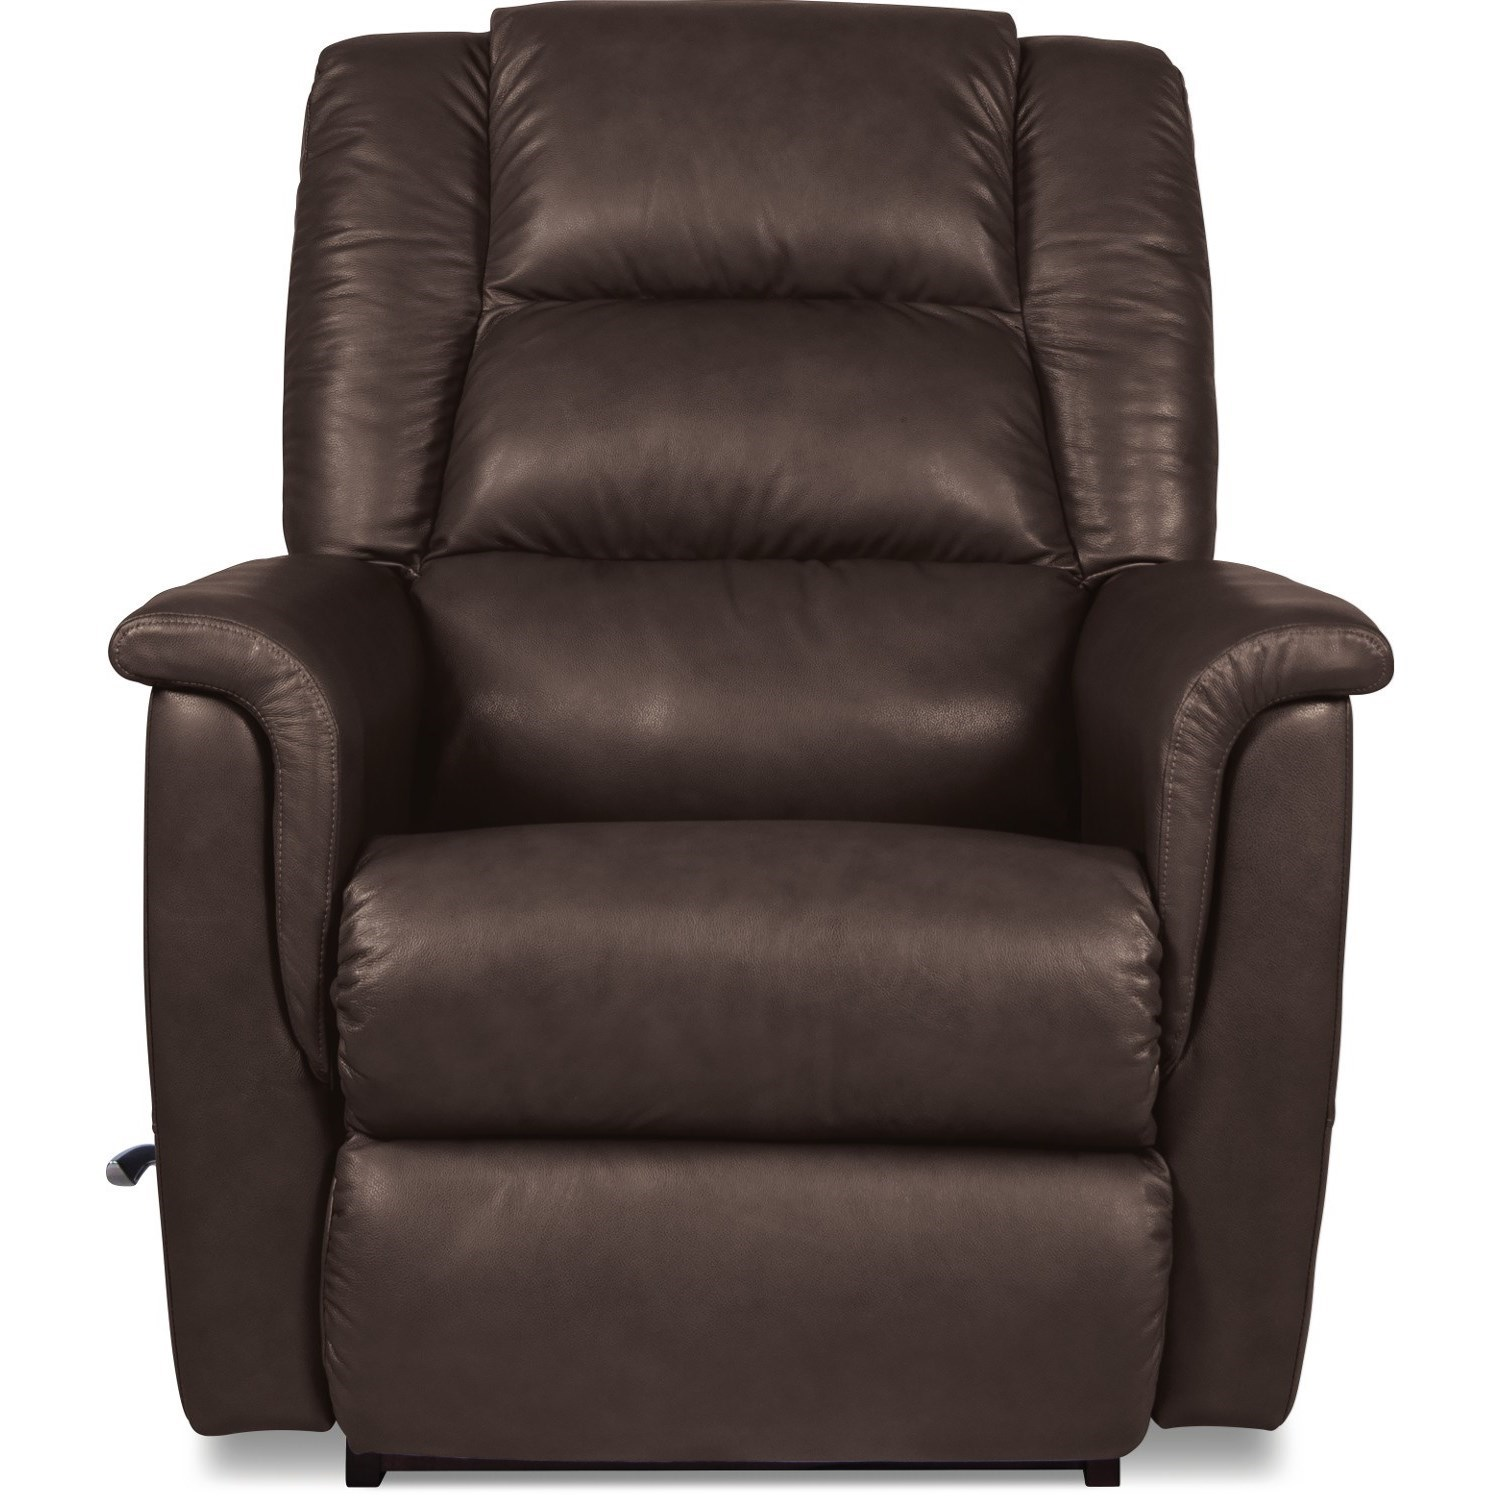 Murray Power Rocking Recliner w/ Headrest & Lumbar by La-Z-Boy at Sparks HomeStore